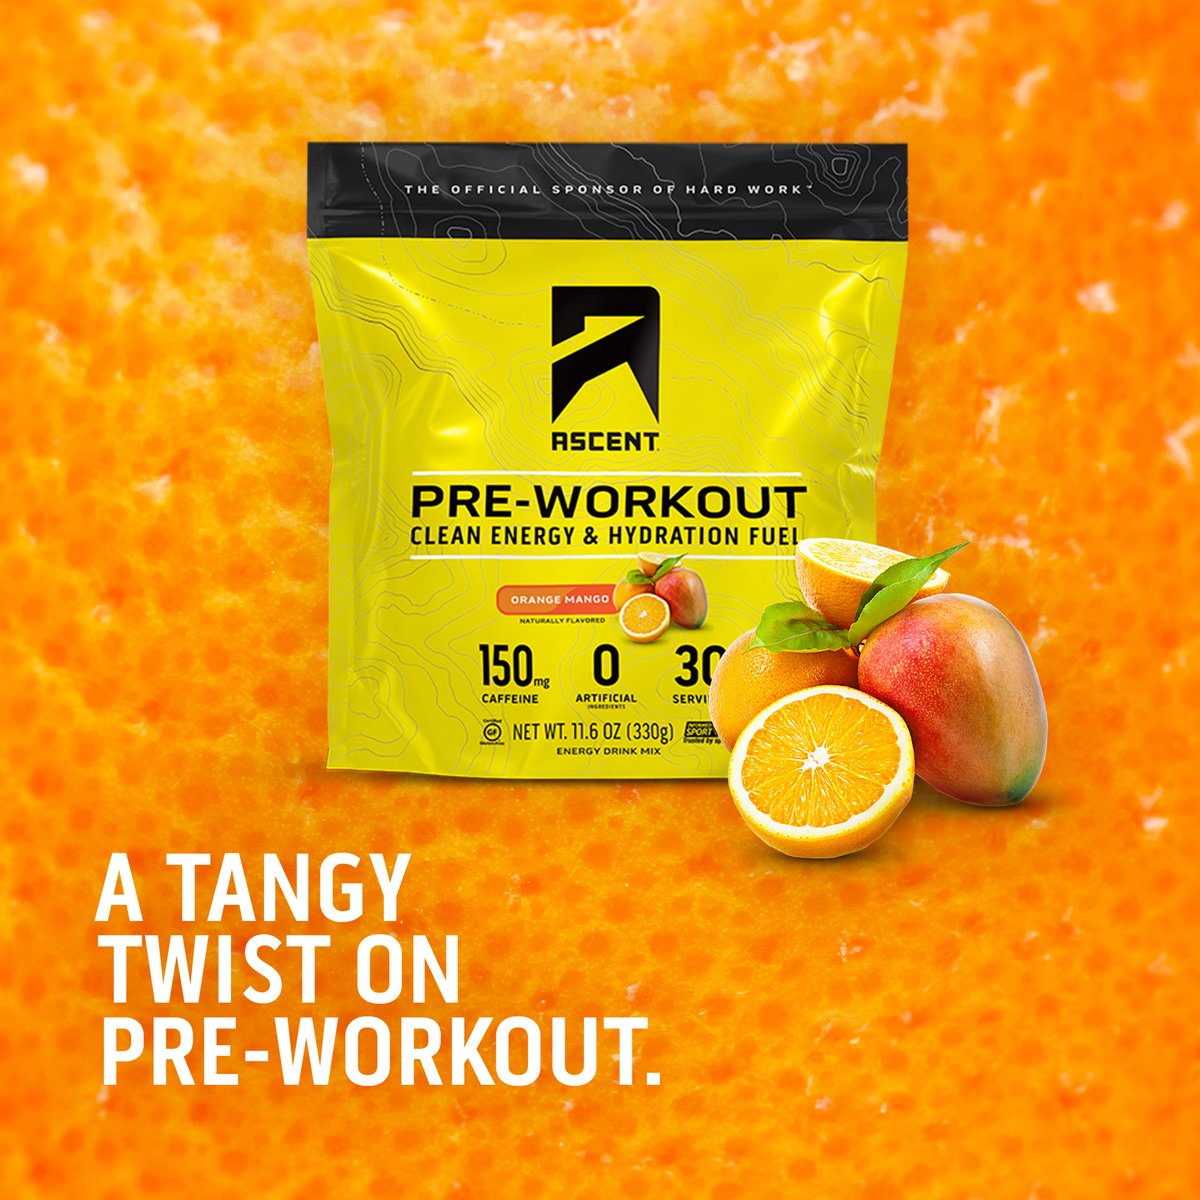 Ascent Protein on Twitter: #NEW! Introducing our newest flavor of #preworkout - Orange Mango - available online starting today;